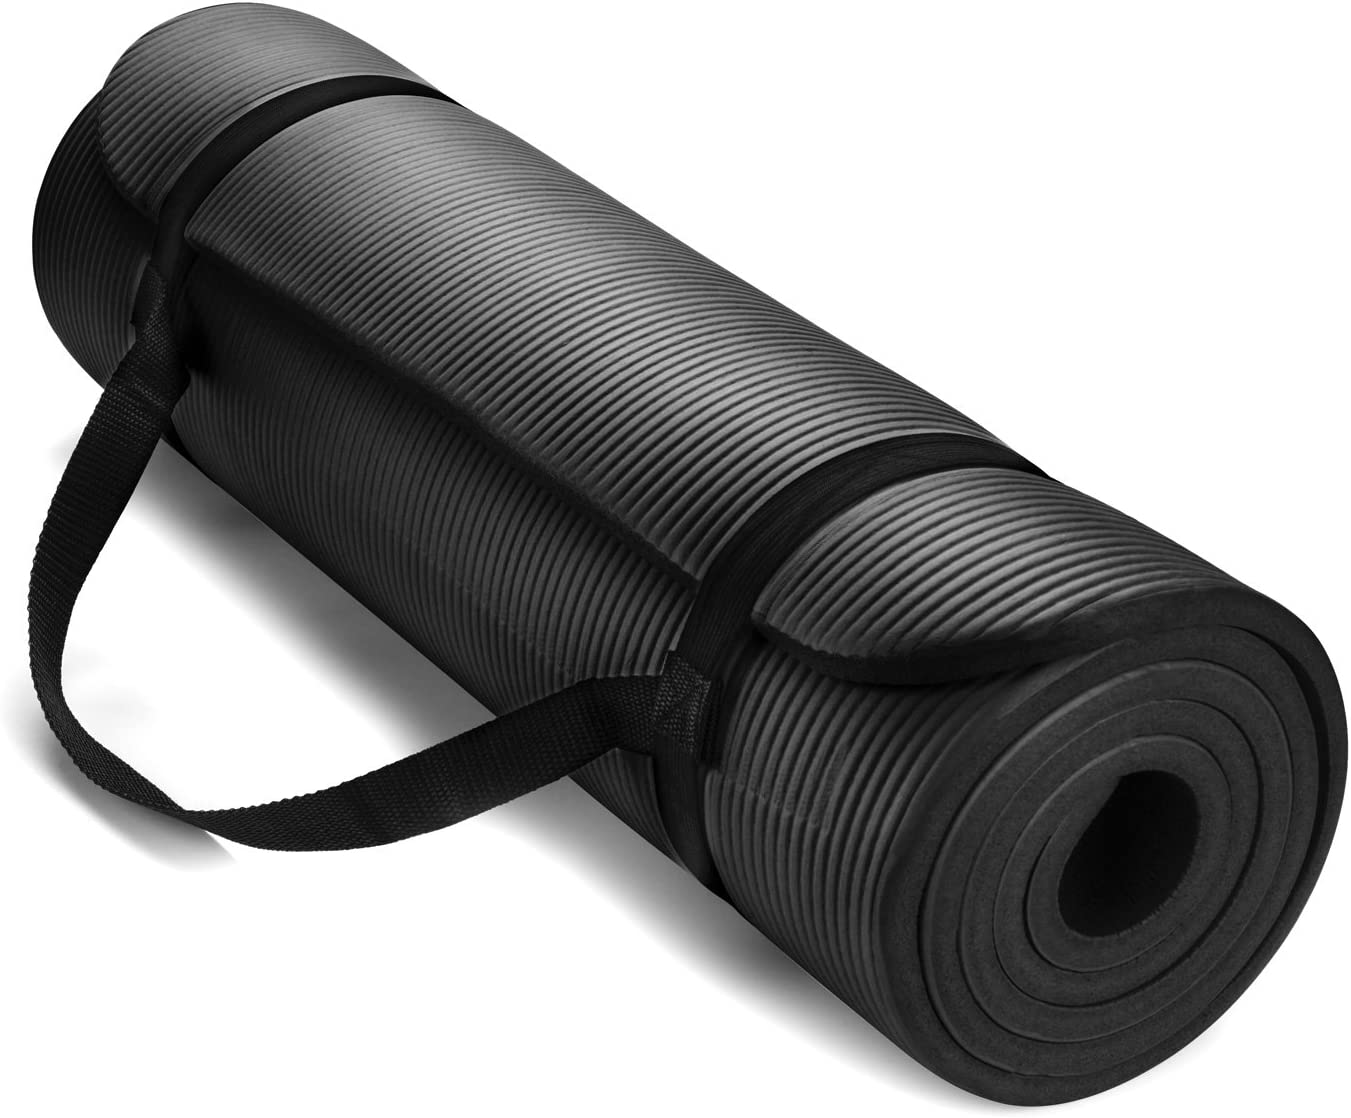 HemingWeigh 1 2-Inch Extra Thick High Density Exercise Yoga Mat with Carrying Strap for Exercise, Yoga and Pilates